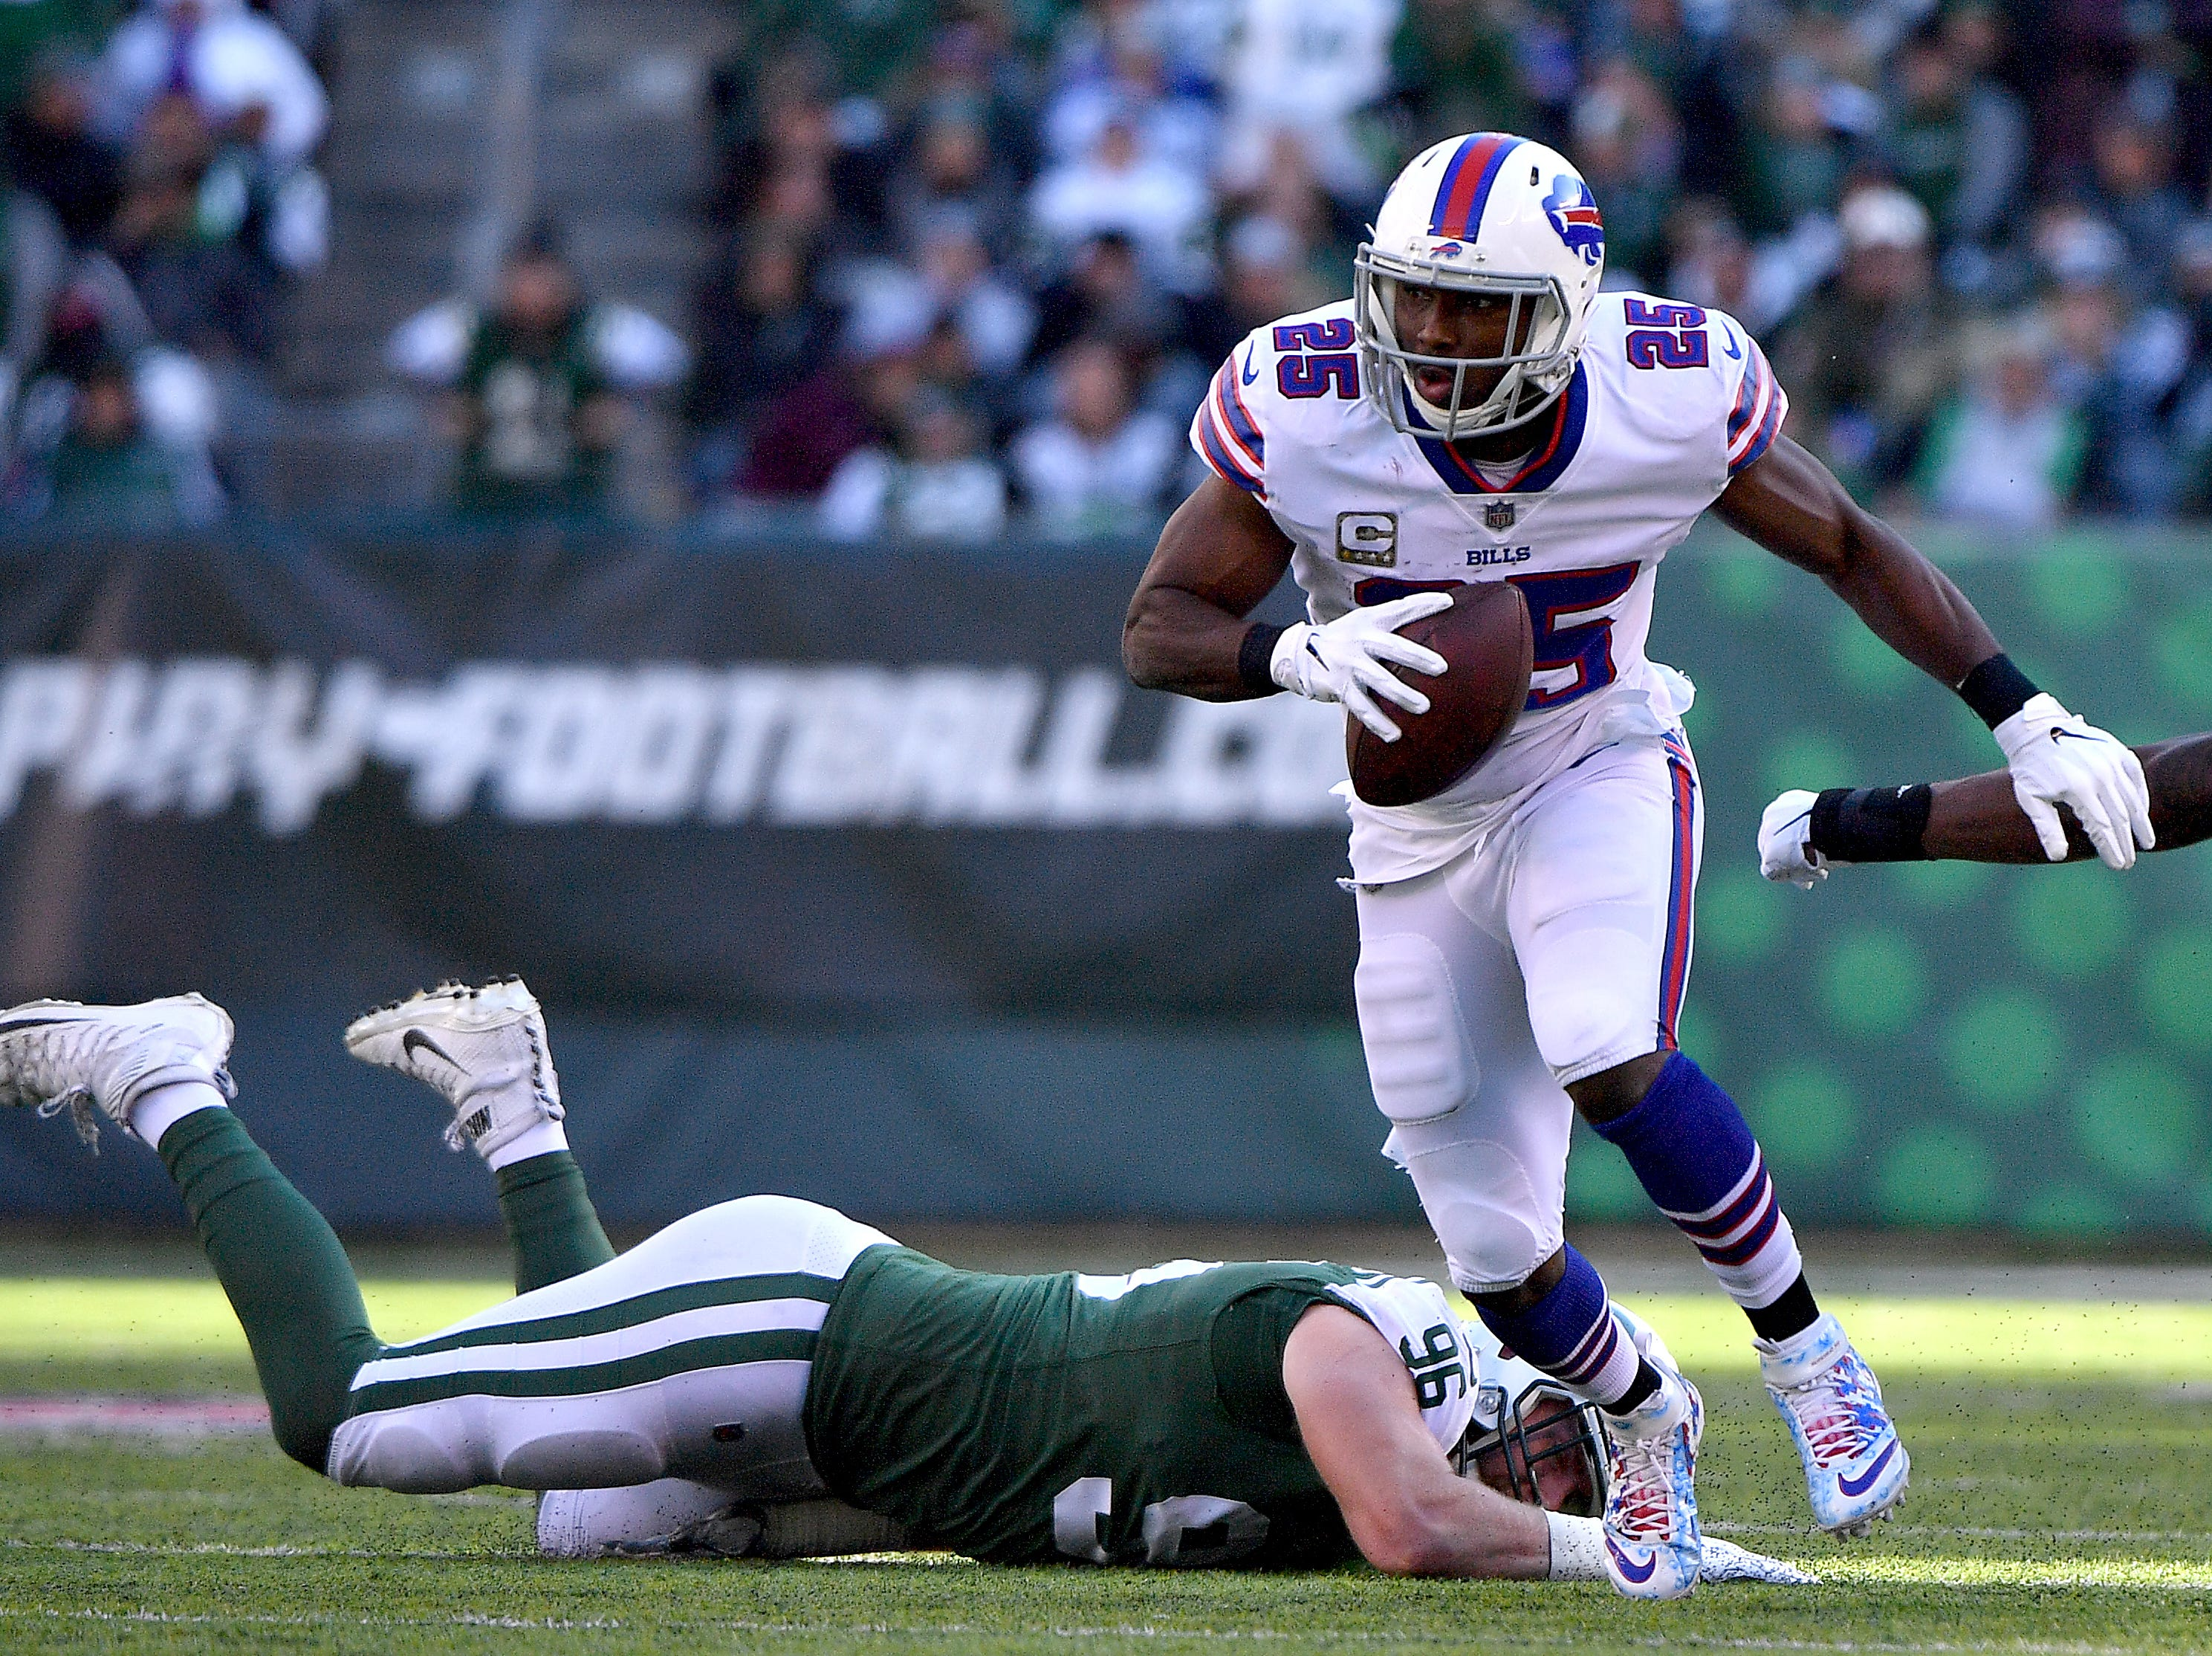 EAST RUTHERFORD, NEW JERSEY - NOVEMBER 11: LeSean McCoy #25 of the Buffalo Bills runs the ball past Henry Anderson #96 of the New York Jets during the second quarter at MetLife Stadium on November 11, 2018 in East Rutherford, New Jersey. (Photo by Mark Brown/Getty Images)